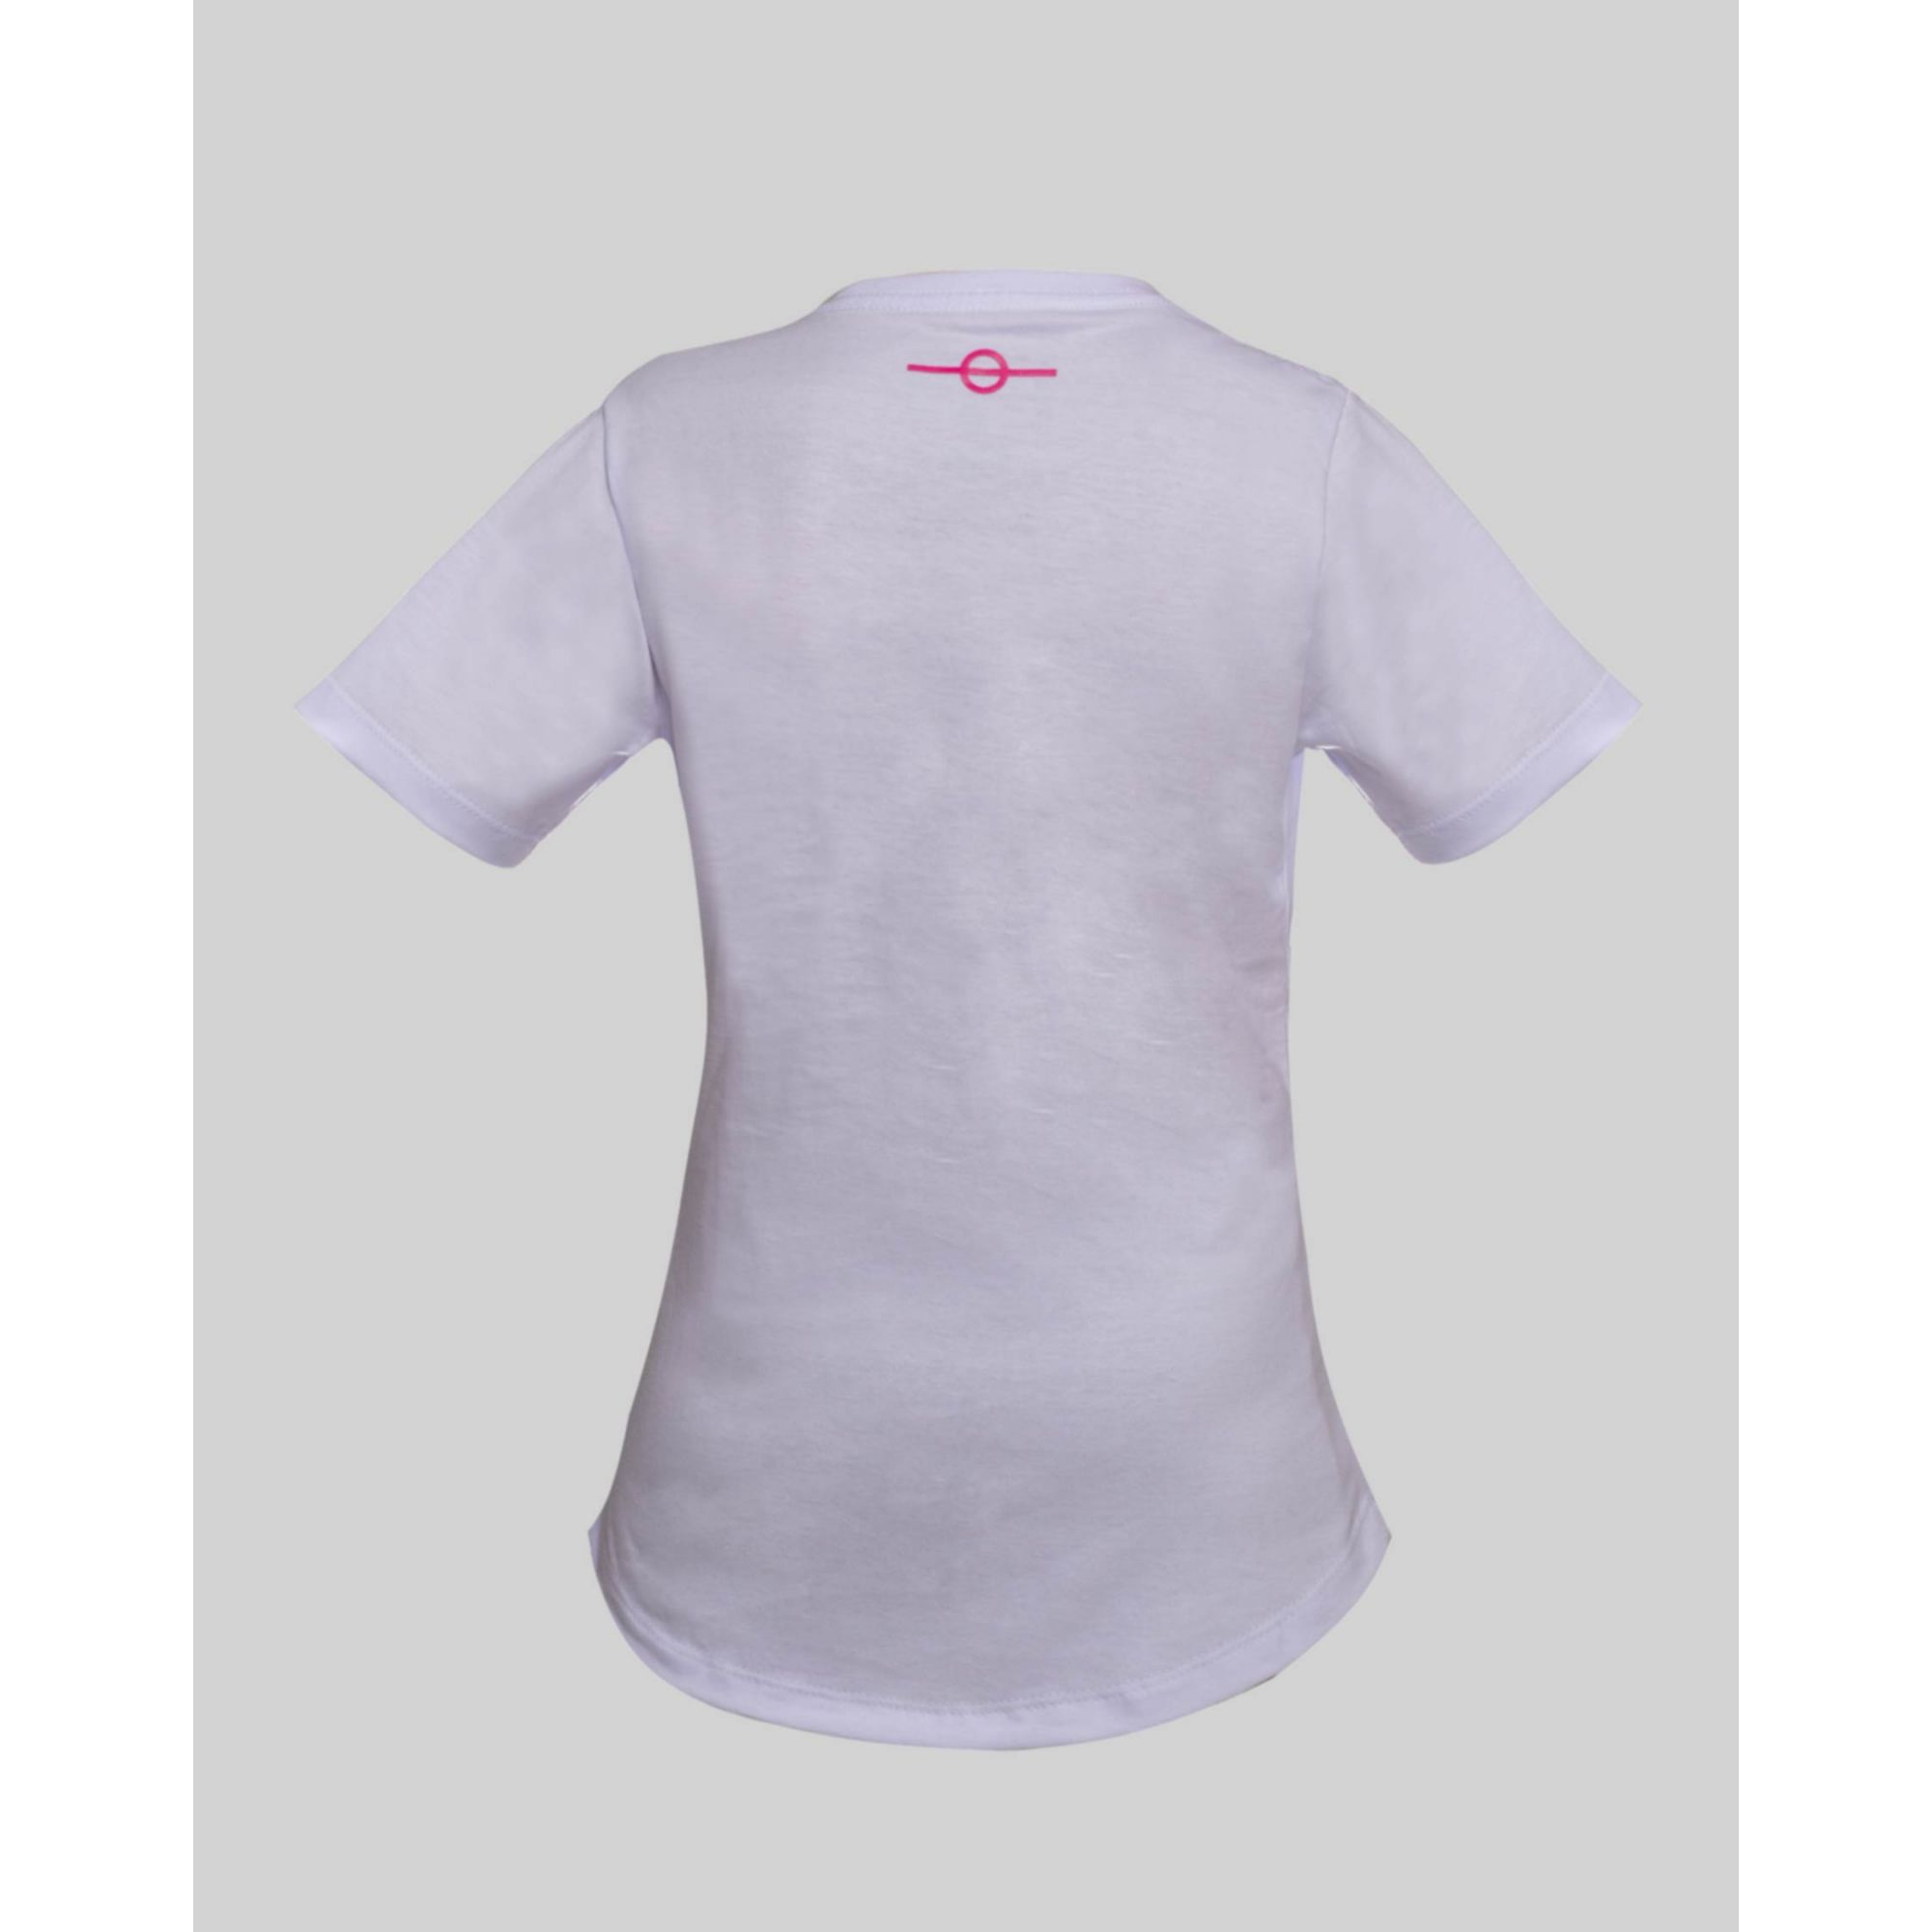 Camiseta Buh Kids Fluor Square White